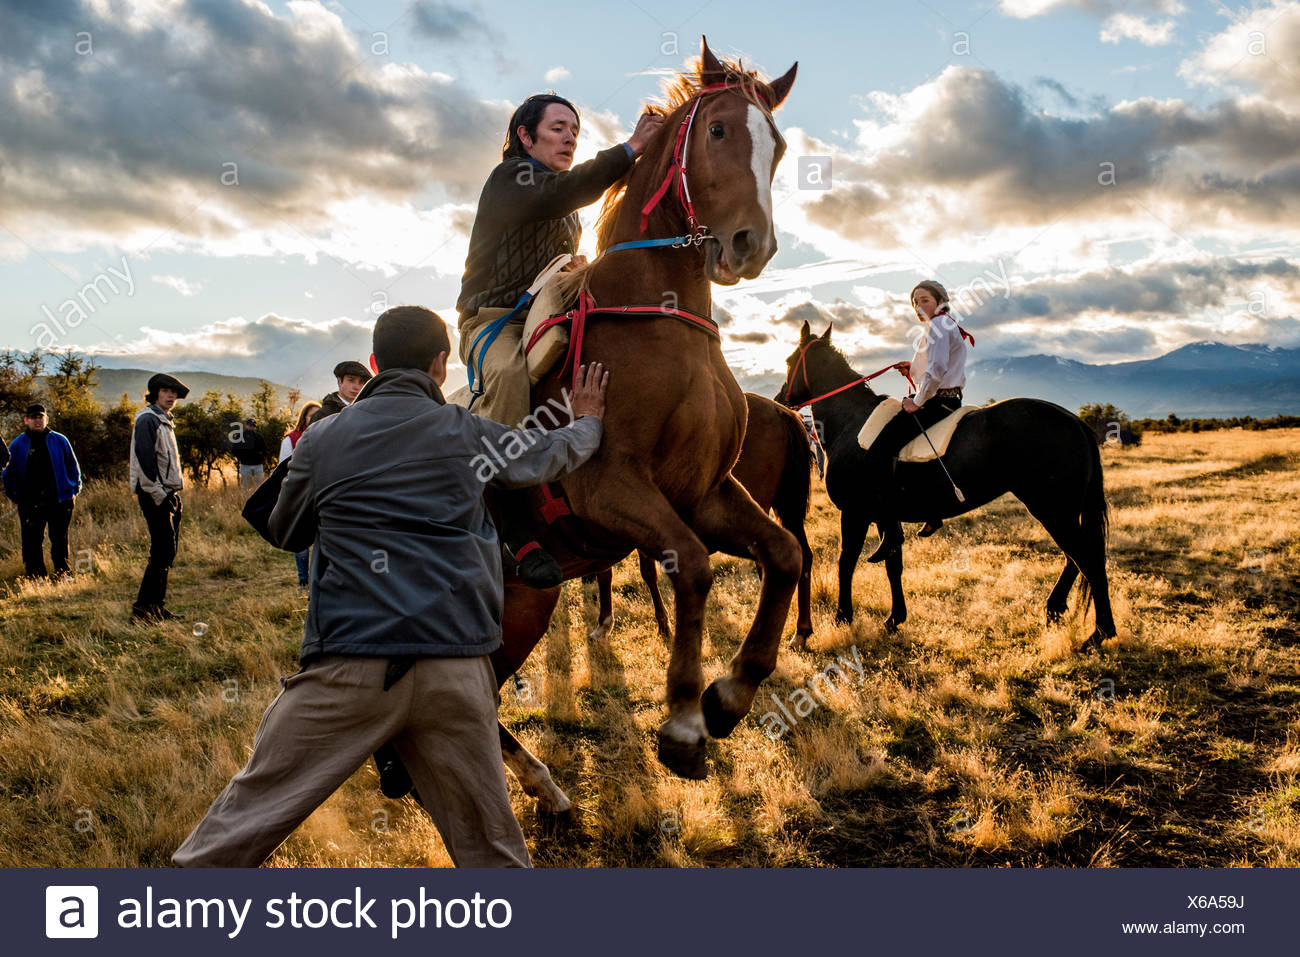 Getting ready for a horse race during a Jineteada Festival or wild horse riding festival on a ranch. - Stock Image